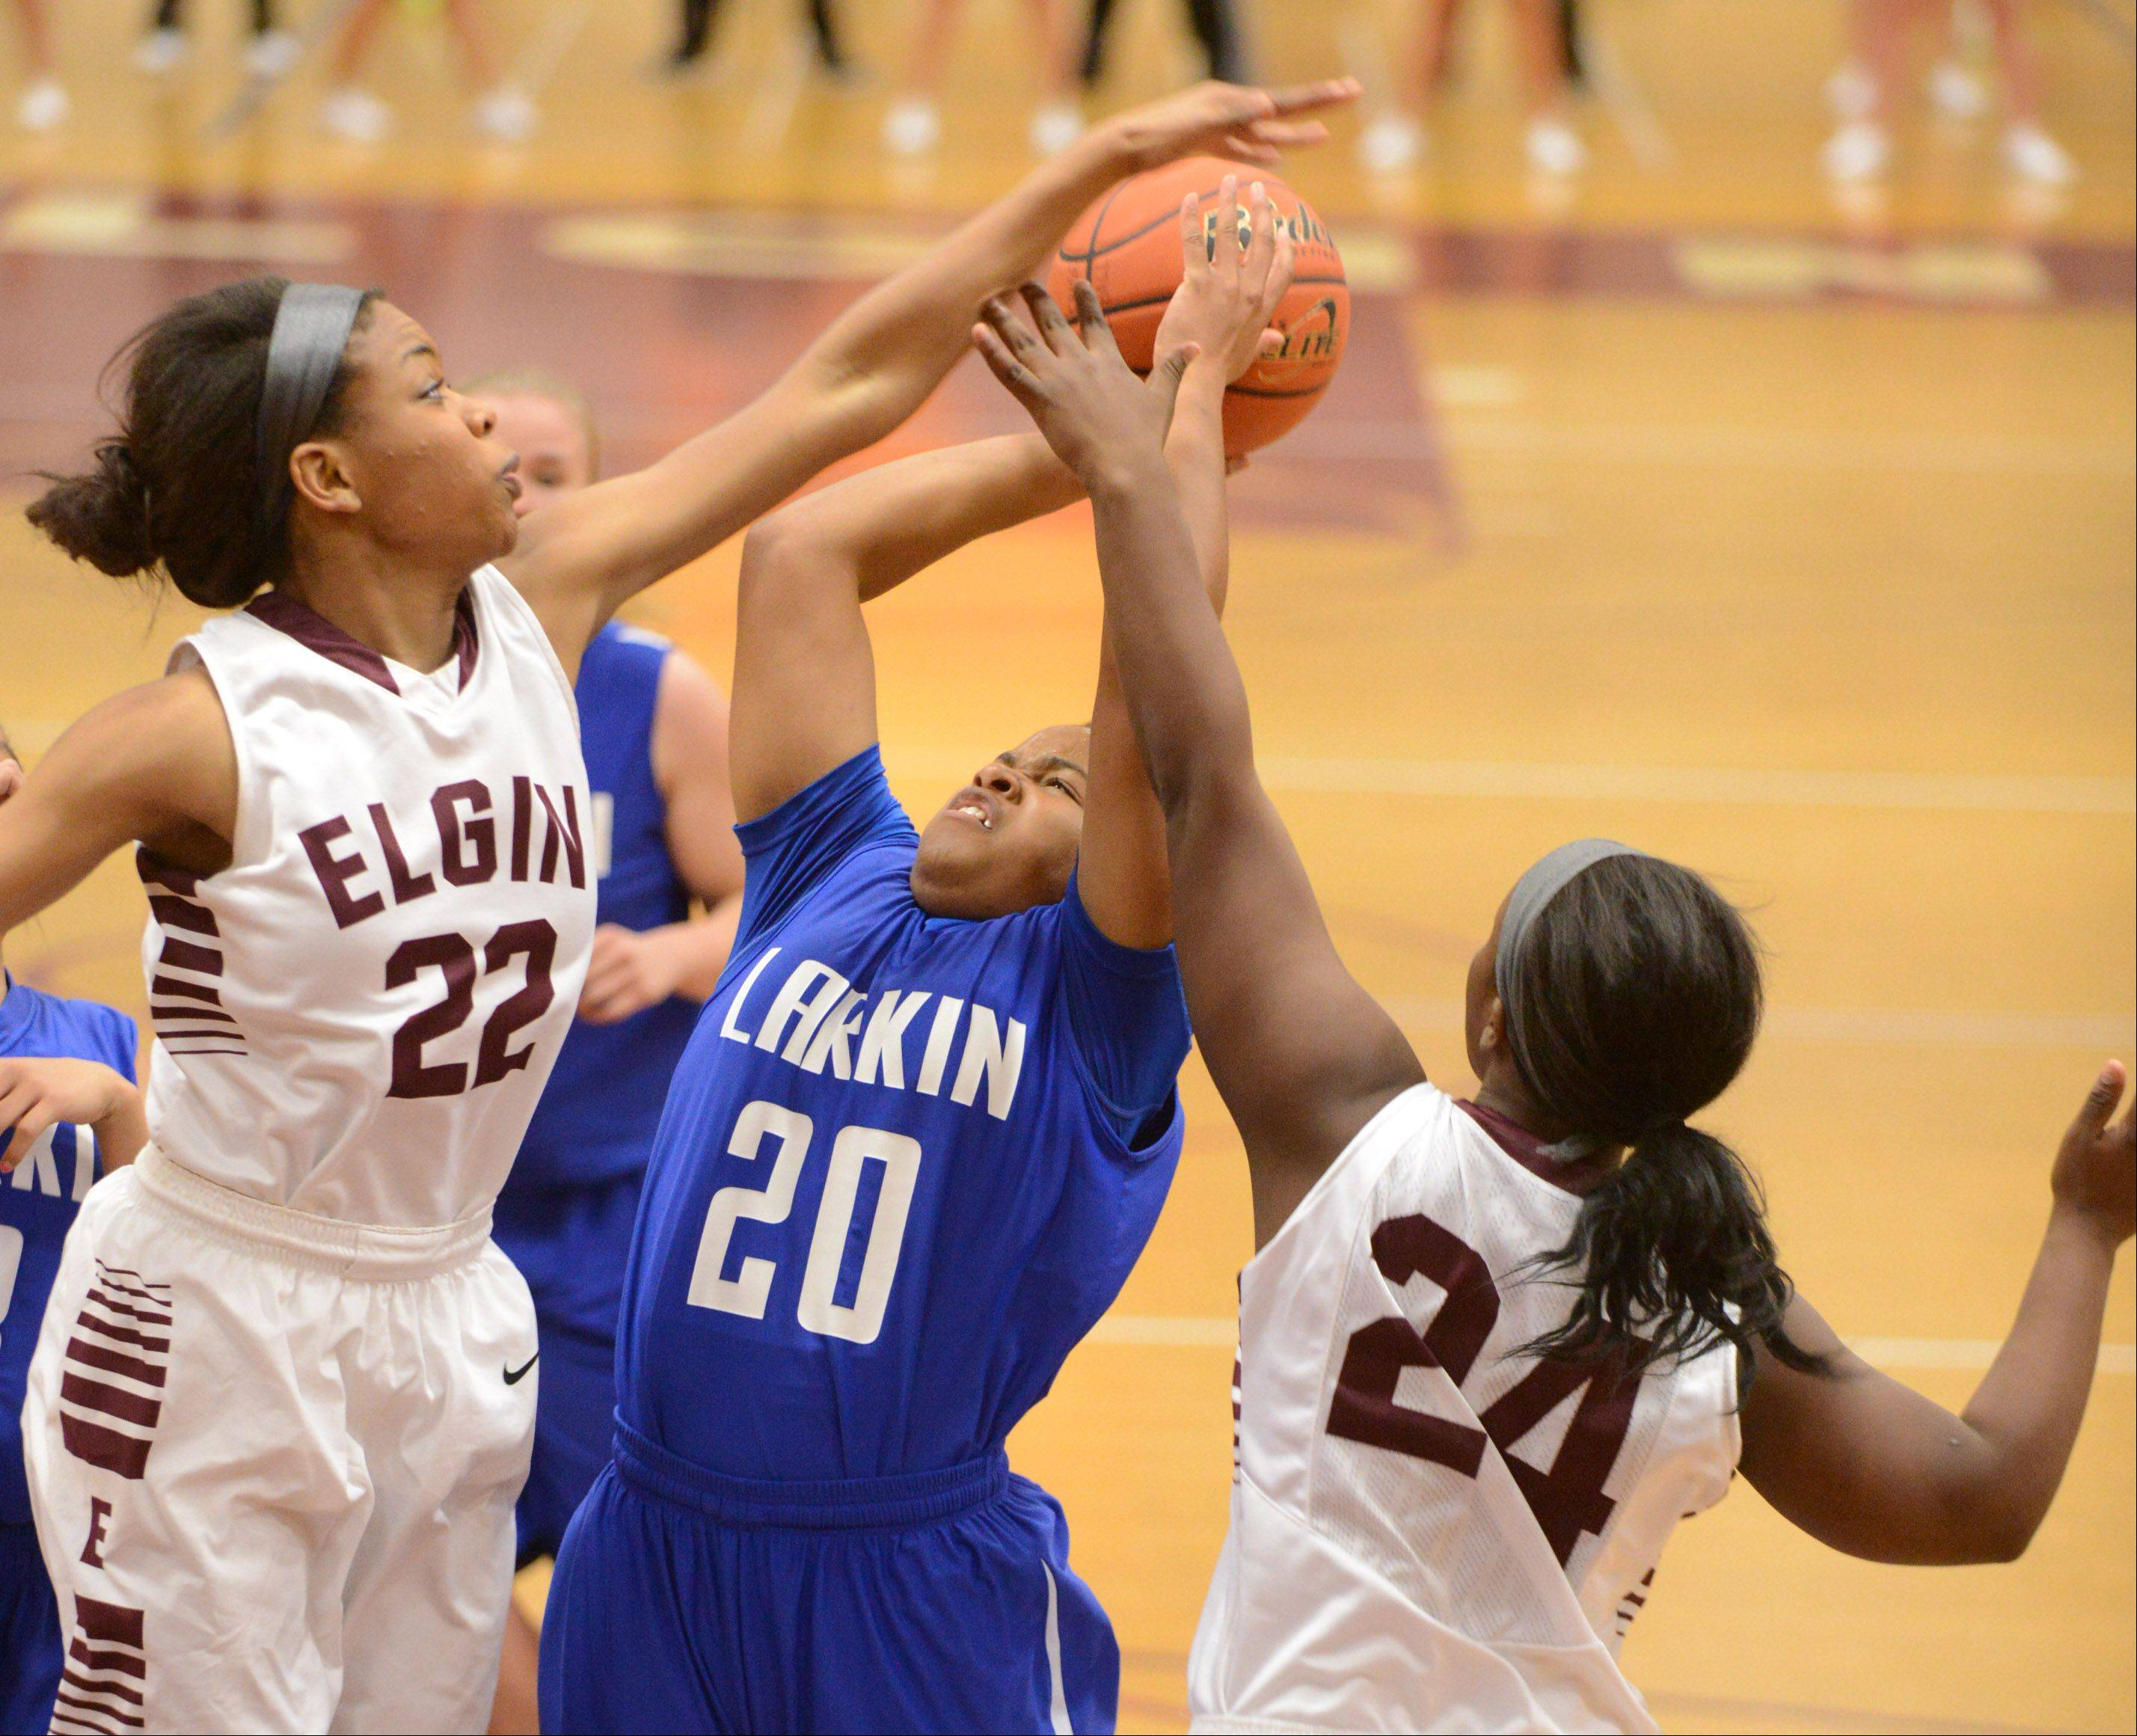 Images from the Elgin vs. Larkin girls basketball game Friday, December 20, 2013.